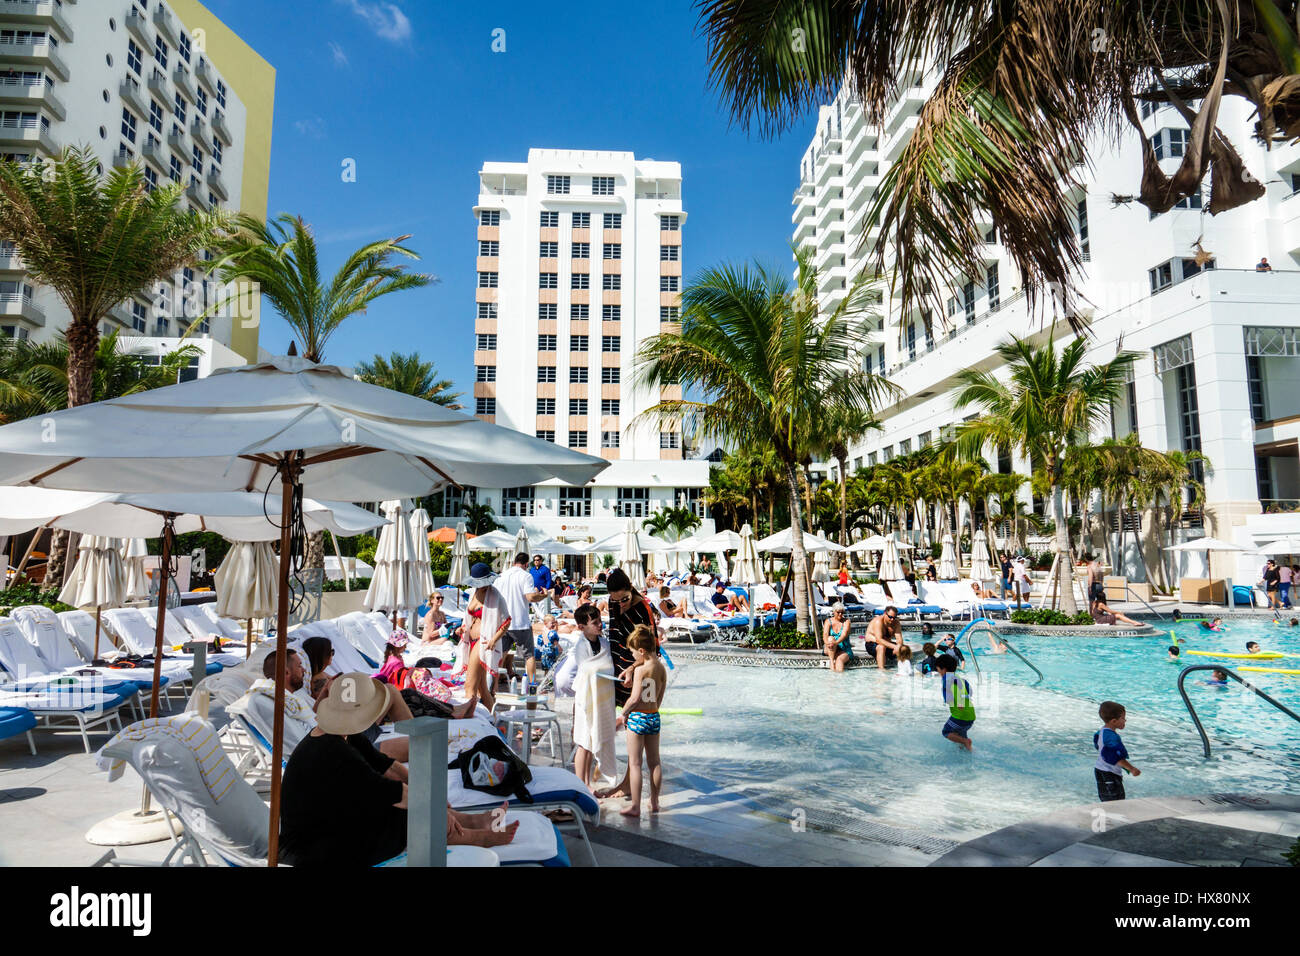 Miami Beach Florida Loews Miami Beach Hotel St Moritz Hotel